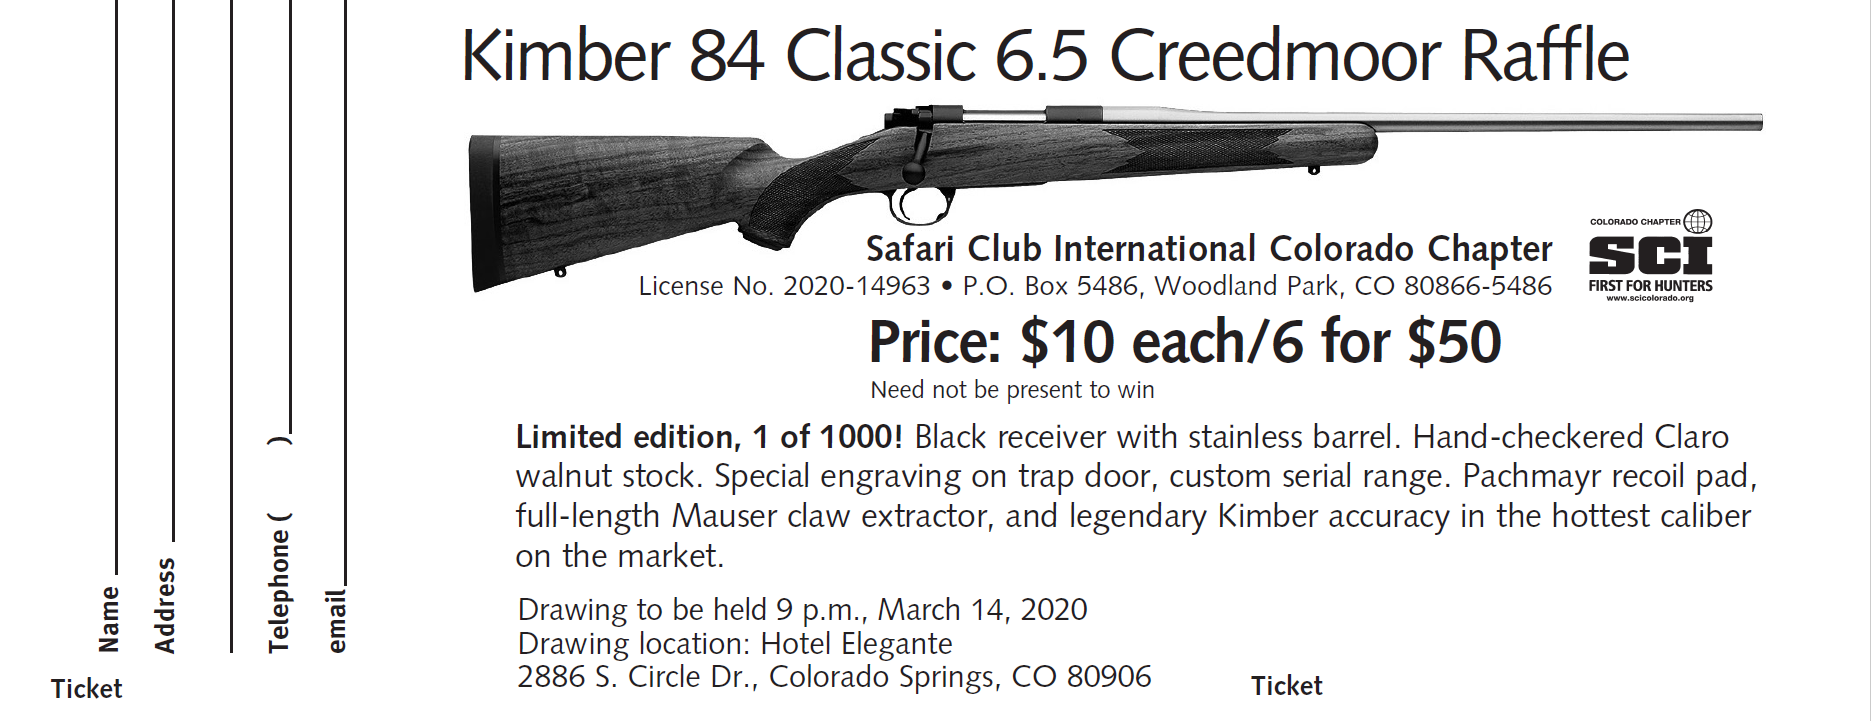 Kimber 84 Classic Two Tone Limited Edition (1 of 1000) - 1 Ticket